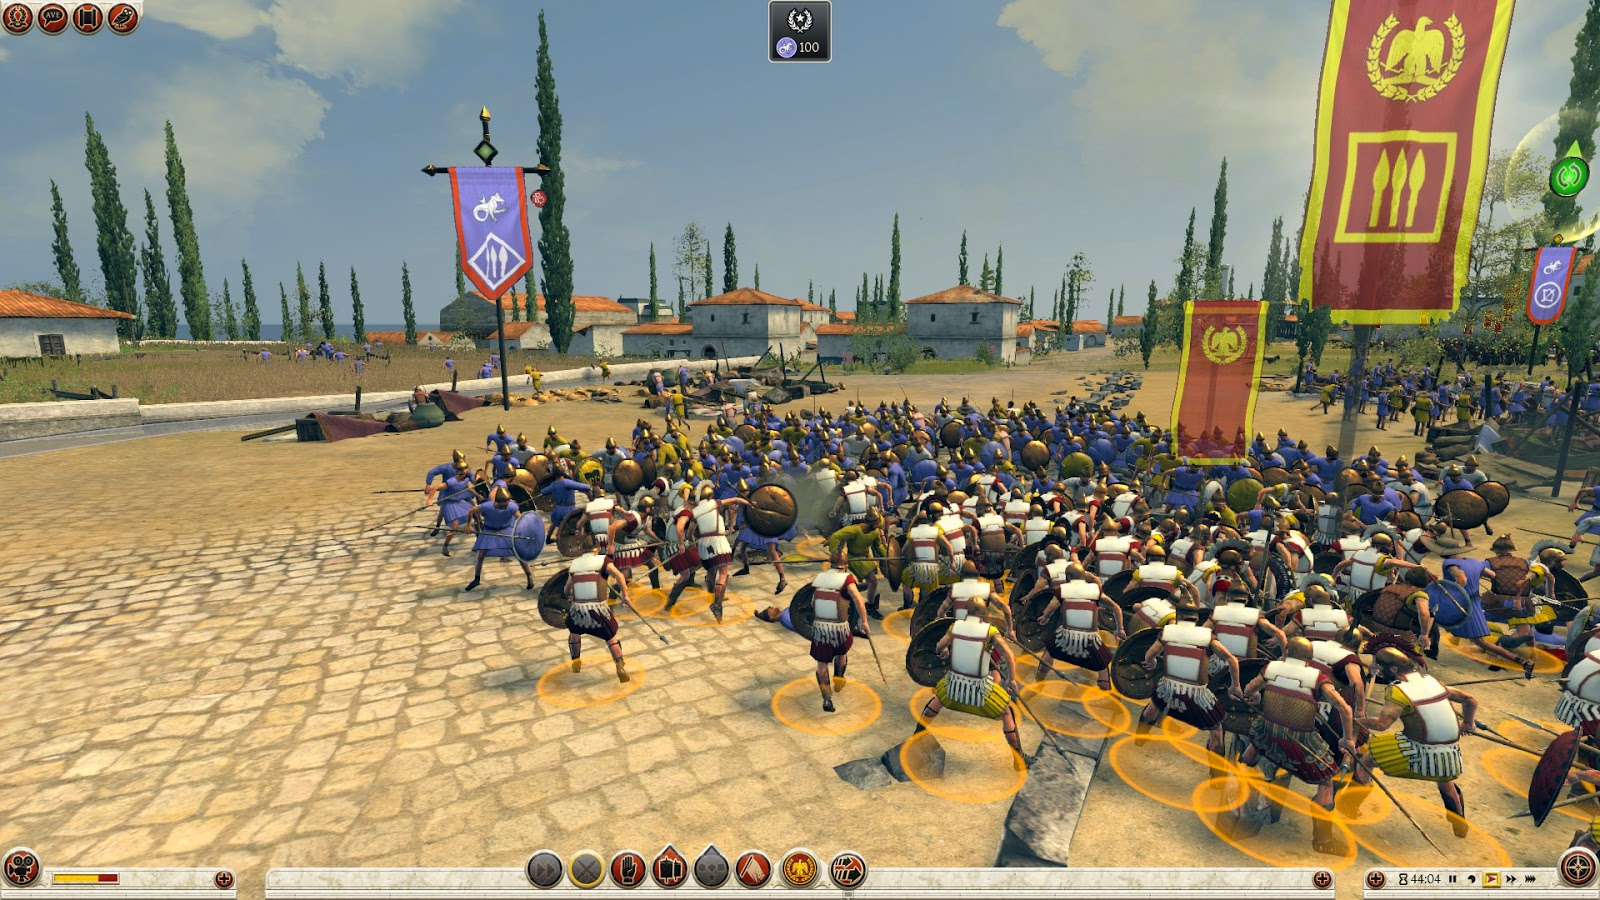 Total War: Rome II full game free pc, download, play  download Total